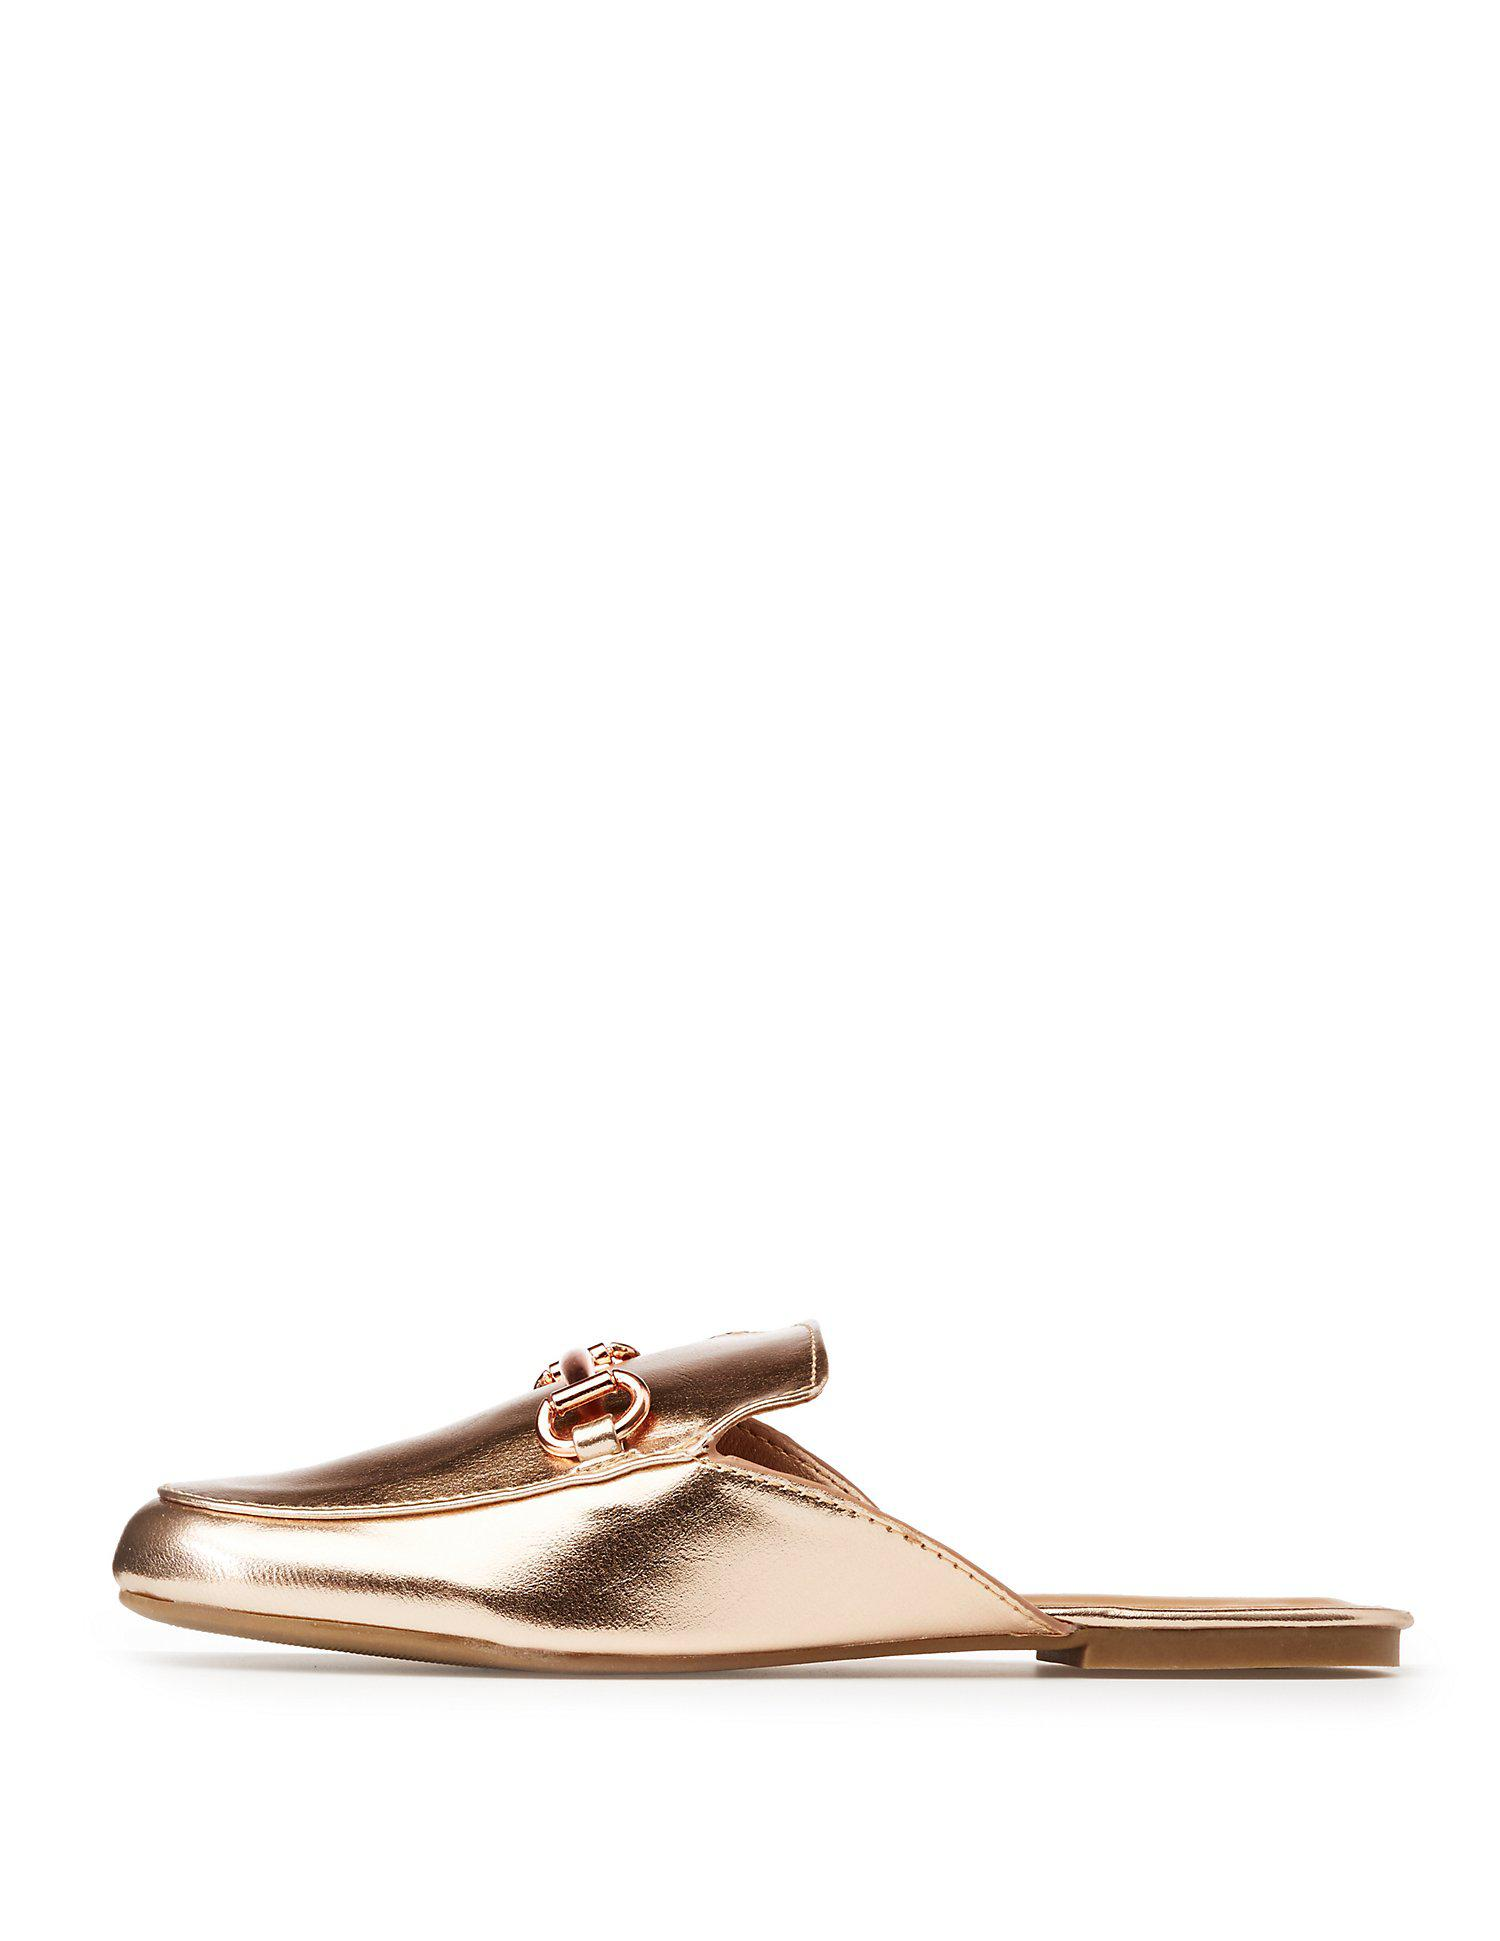 2ace4054029 Lyst - Charlotte Russe Bamboo Metallic Metal Buckle Loafer Mules in ...